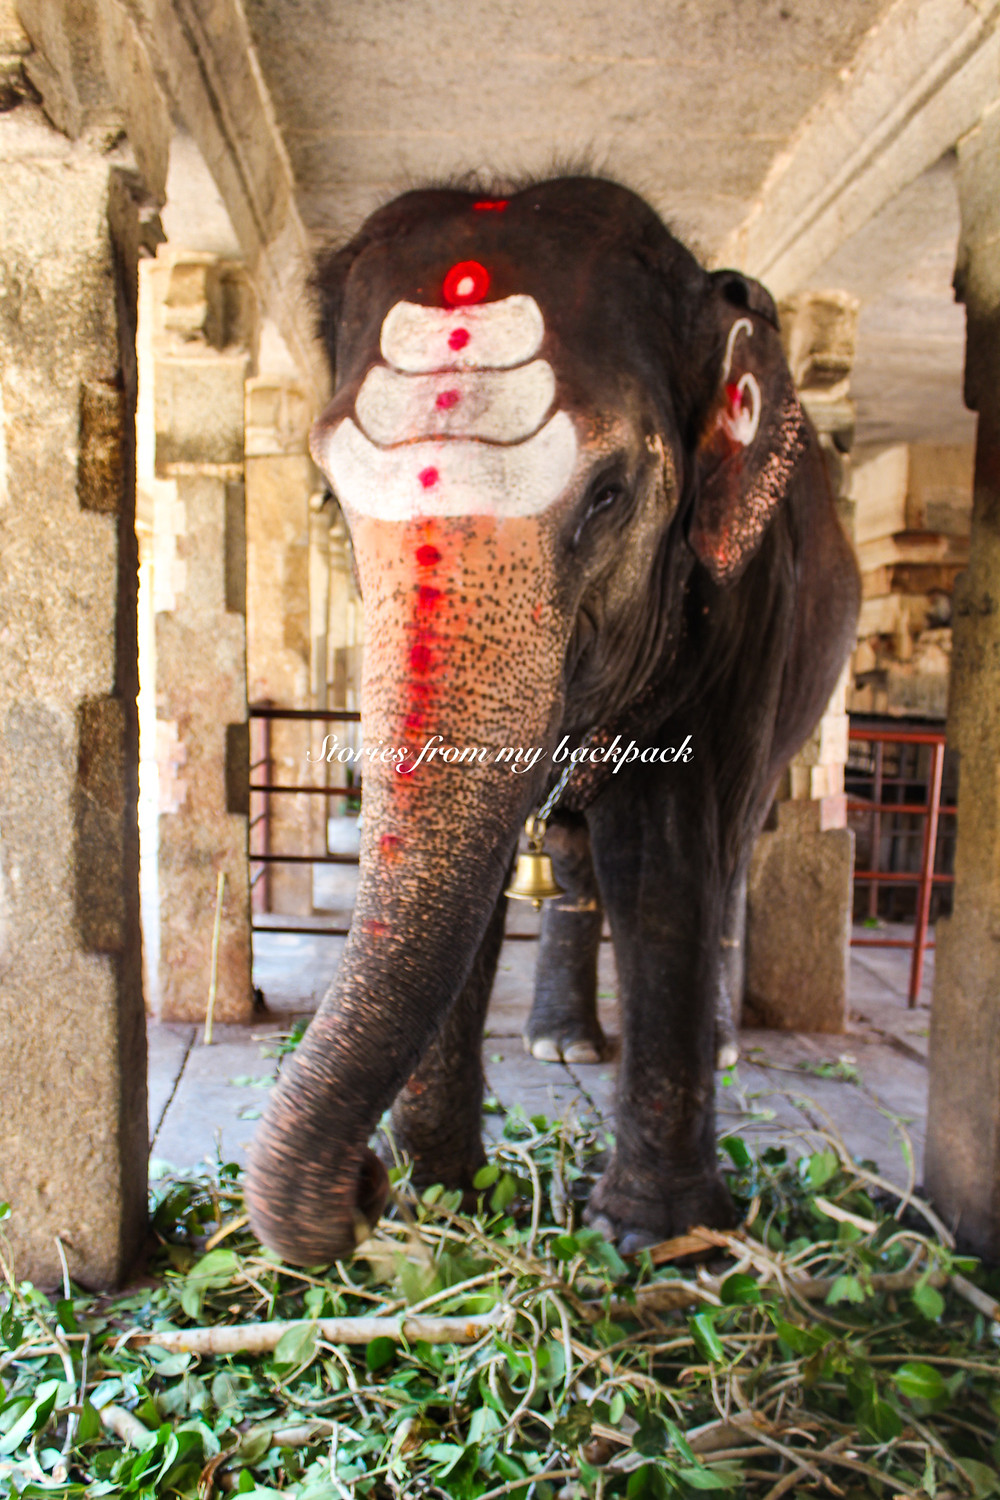 hampi, musical pillars of Hampi, best temples in Hampi, Hampi tour, things to do in Hampi, Vijaya Vittala temple Hampi, Lakshmi elephant in Hampi